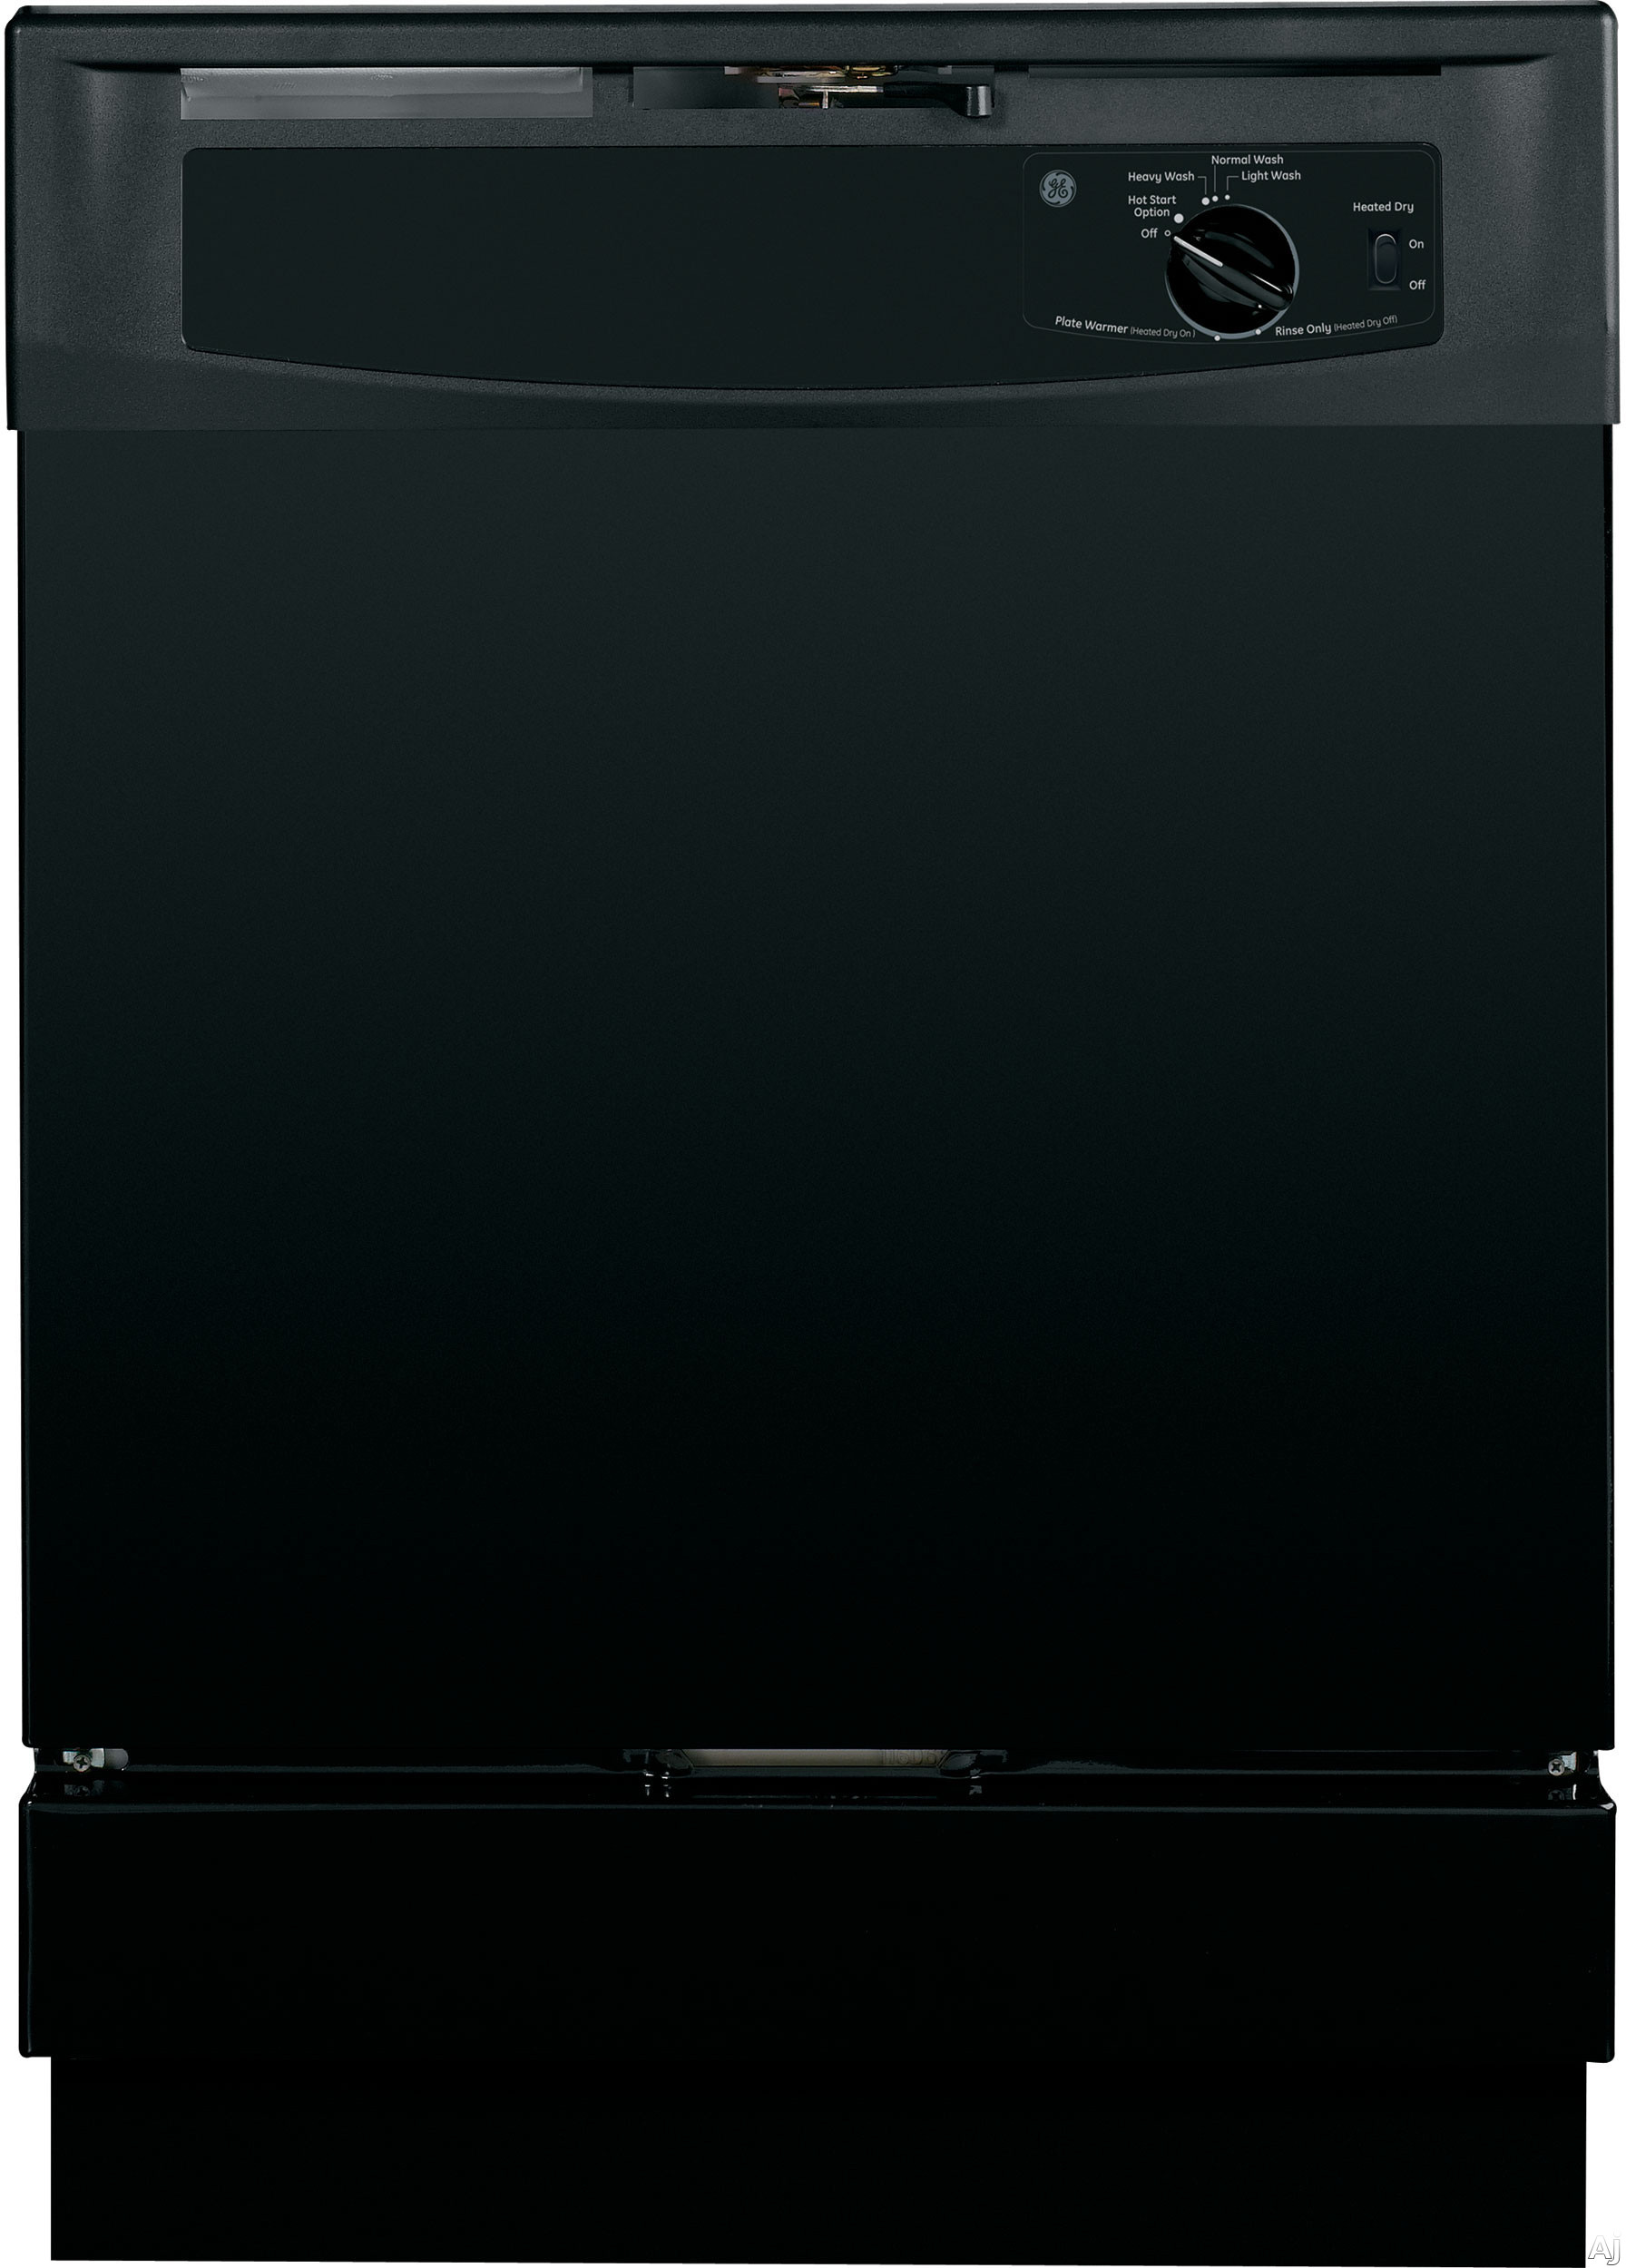 GE GSD2100VBB Full Console Dishwasher with Piranhaâ ¢ Hard Food Disposer, HotStart Option, Extra Fine Filter, 12-Place Settings, 5 Wash Cycles, 64 dBA Silence Rating, 4-Level Wash System, Short Wash and ENERGY STAR ®: Black